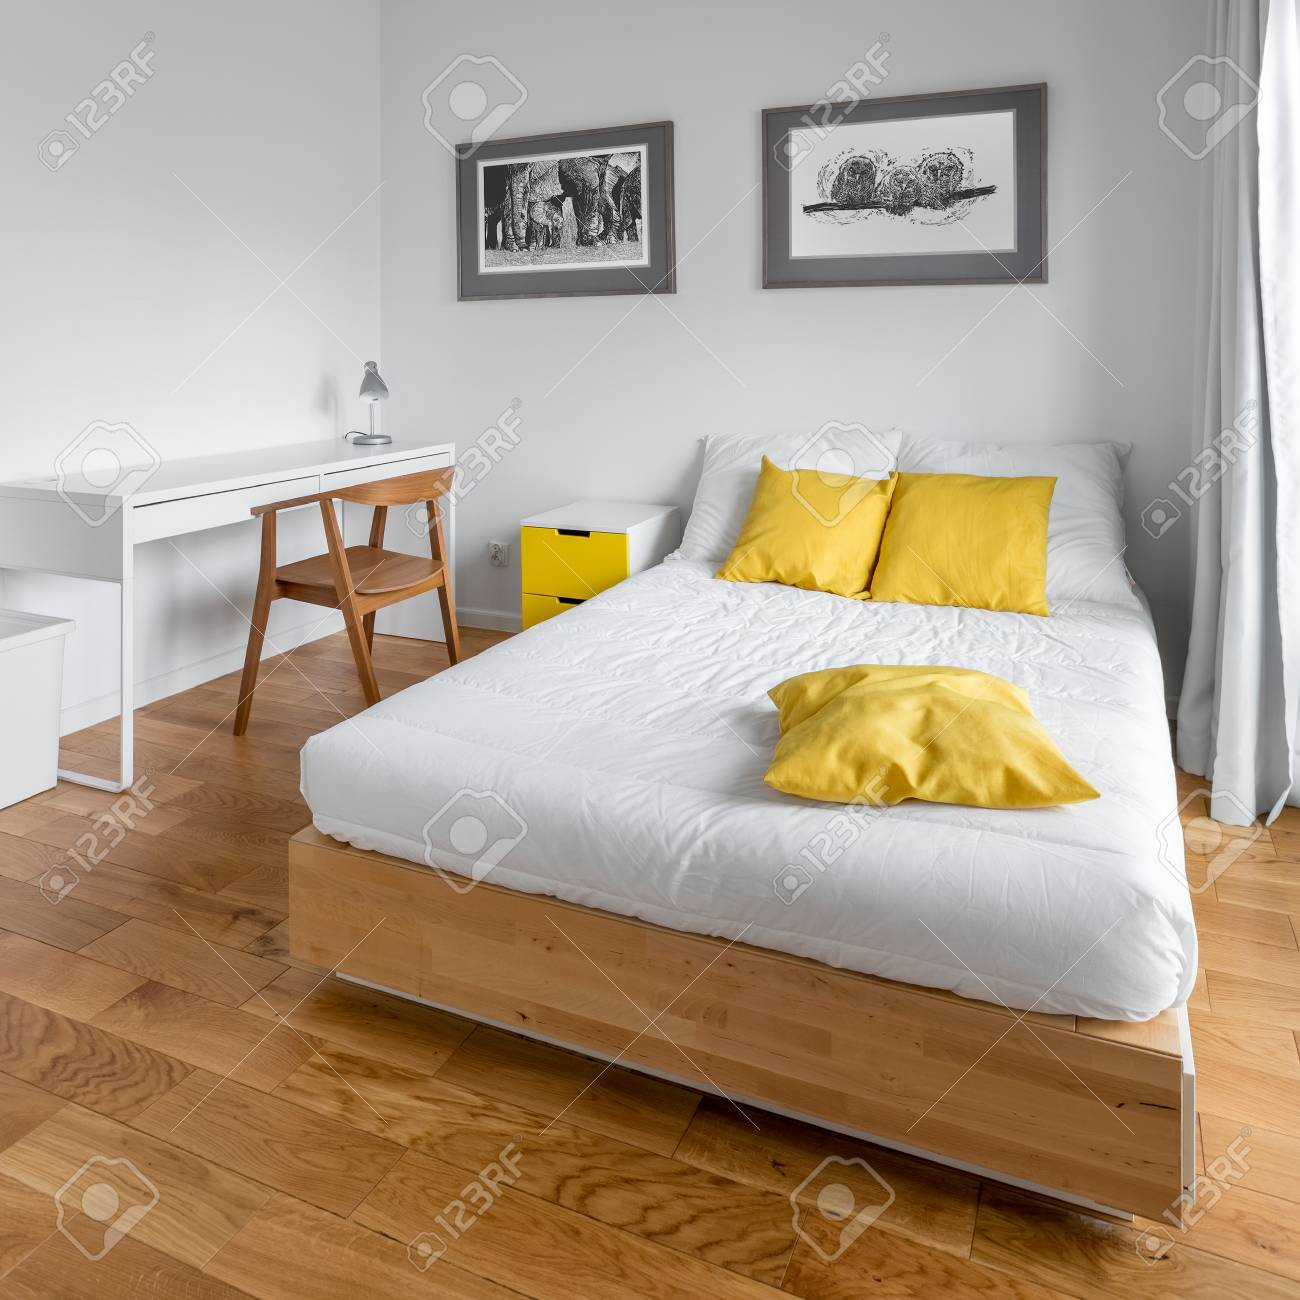 Modern White Bedroom With Big Wooden Bed Desk And Yellow Decorations Stock Photo Picture And Royalty Free Image Image 97351354